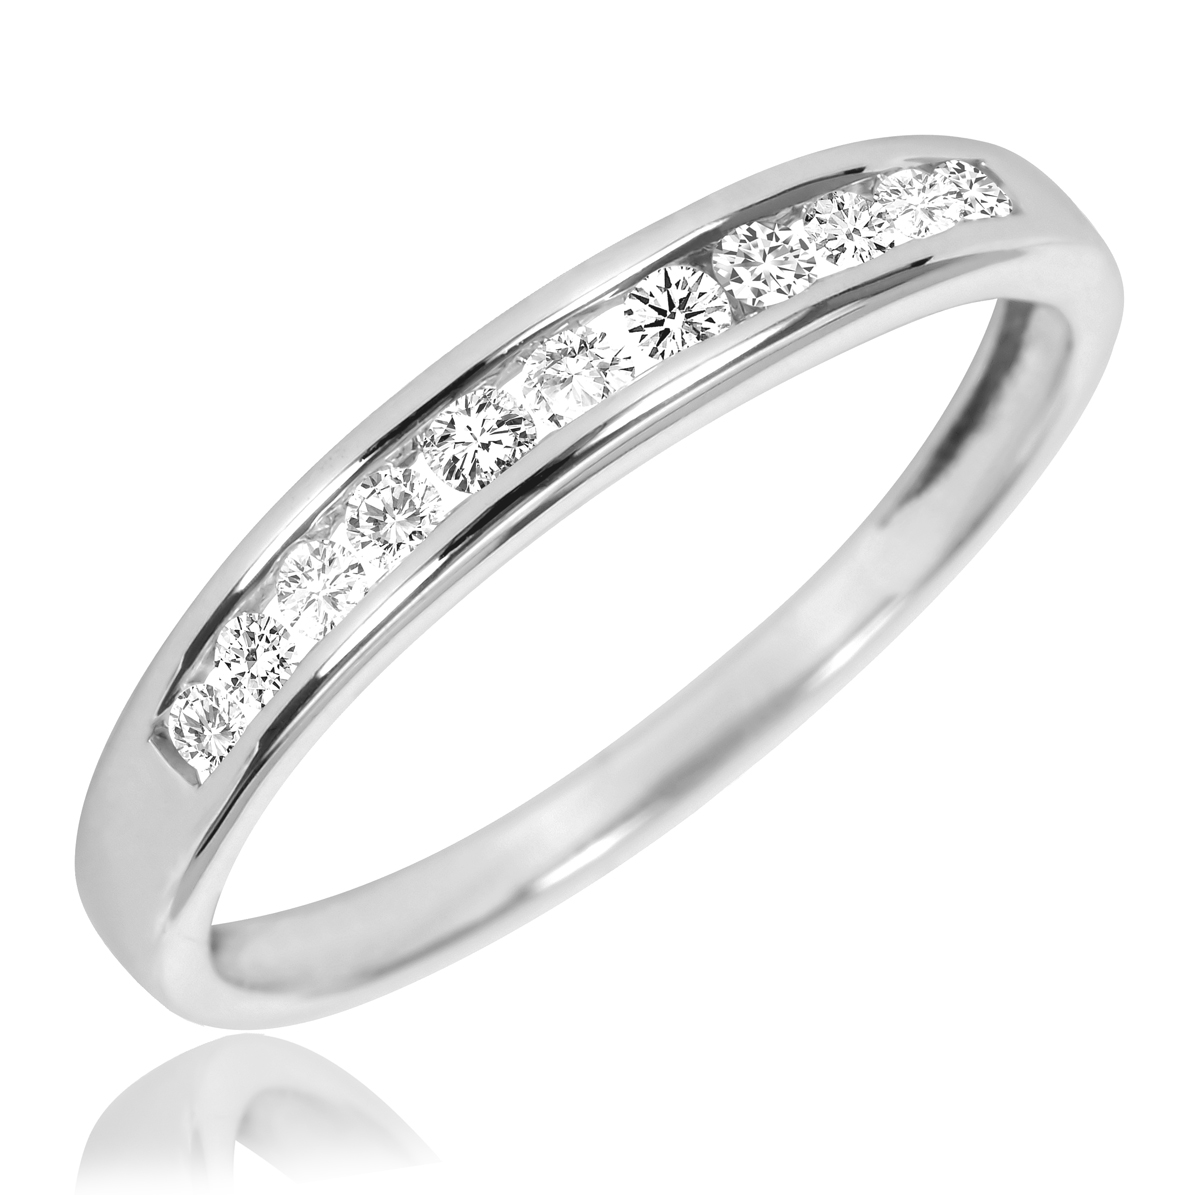 1 1 2 CT T W Diamond Trio Matching Wedding Ring Set 14K White Gold